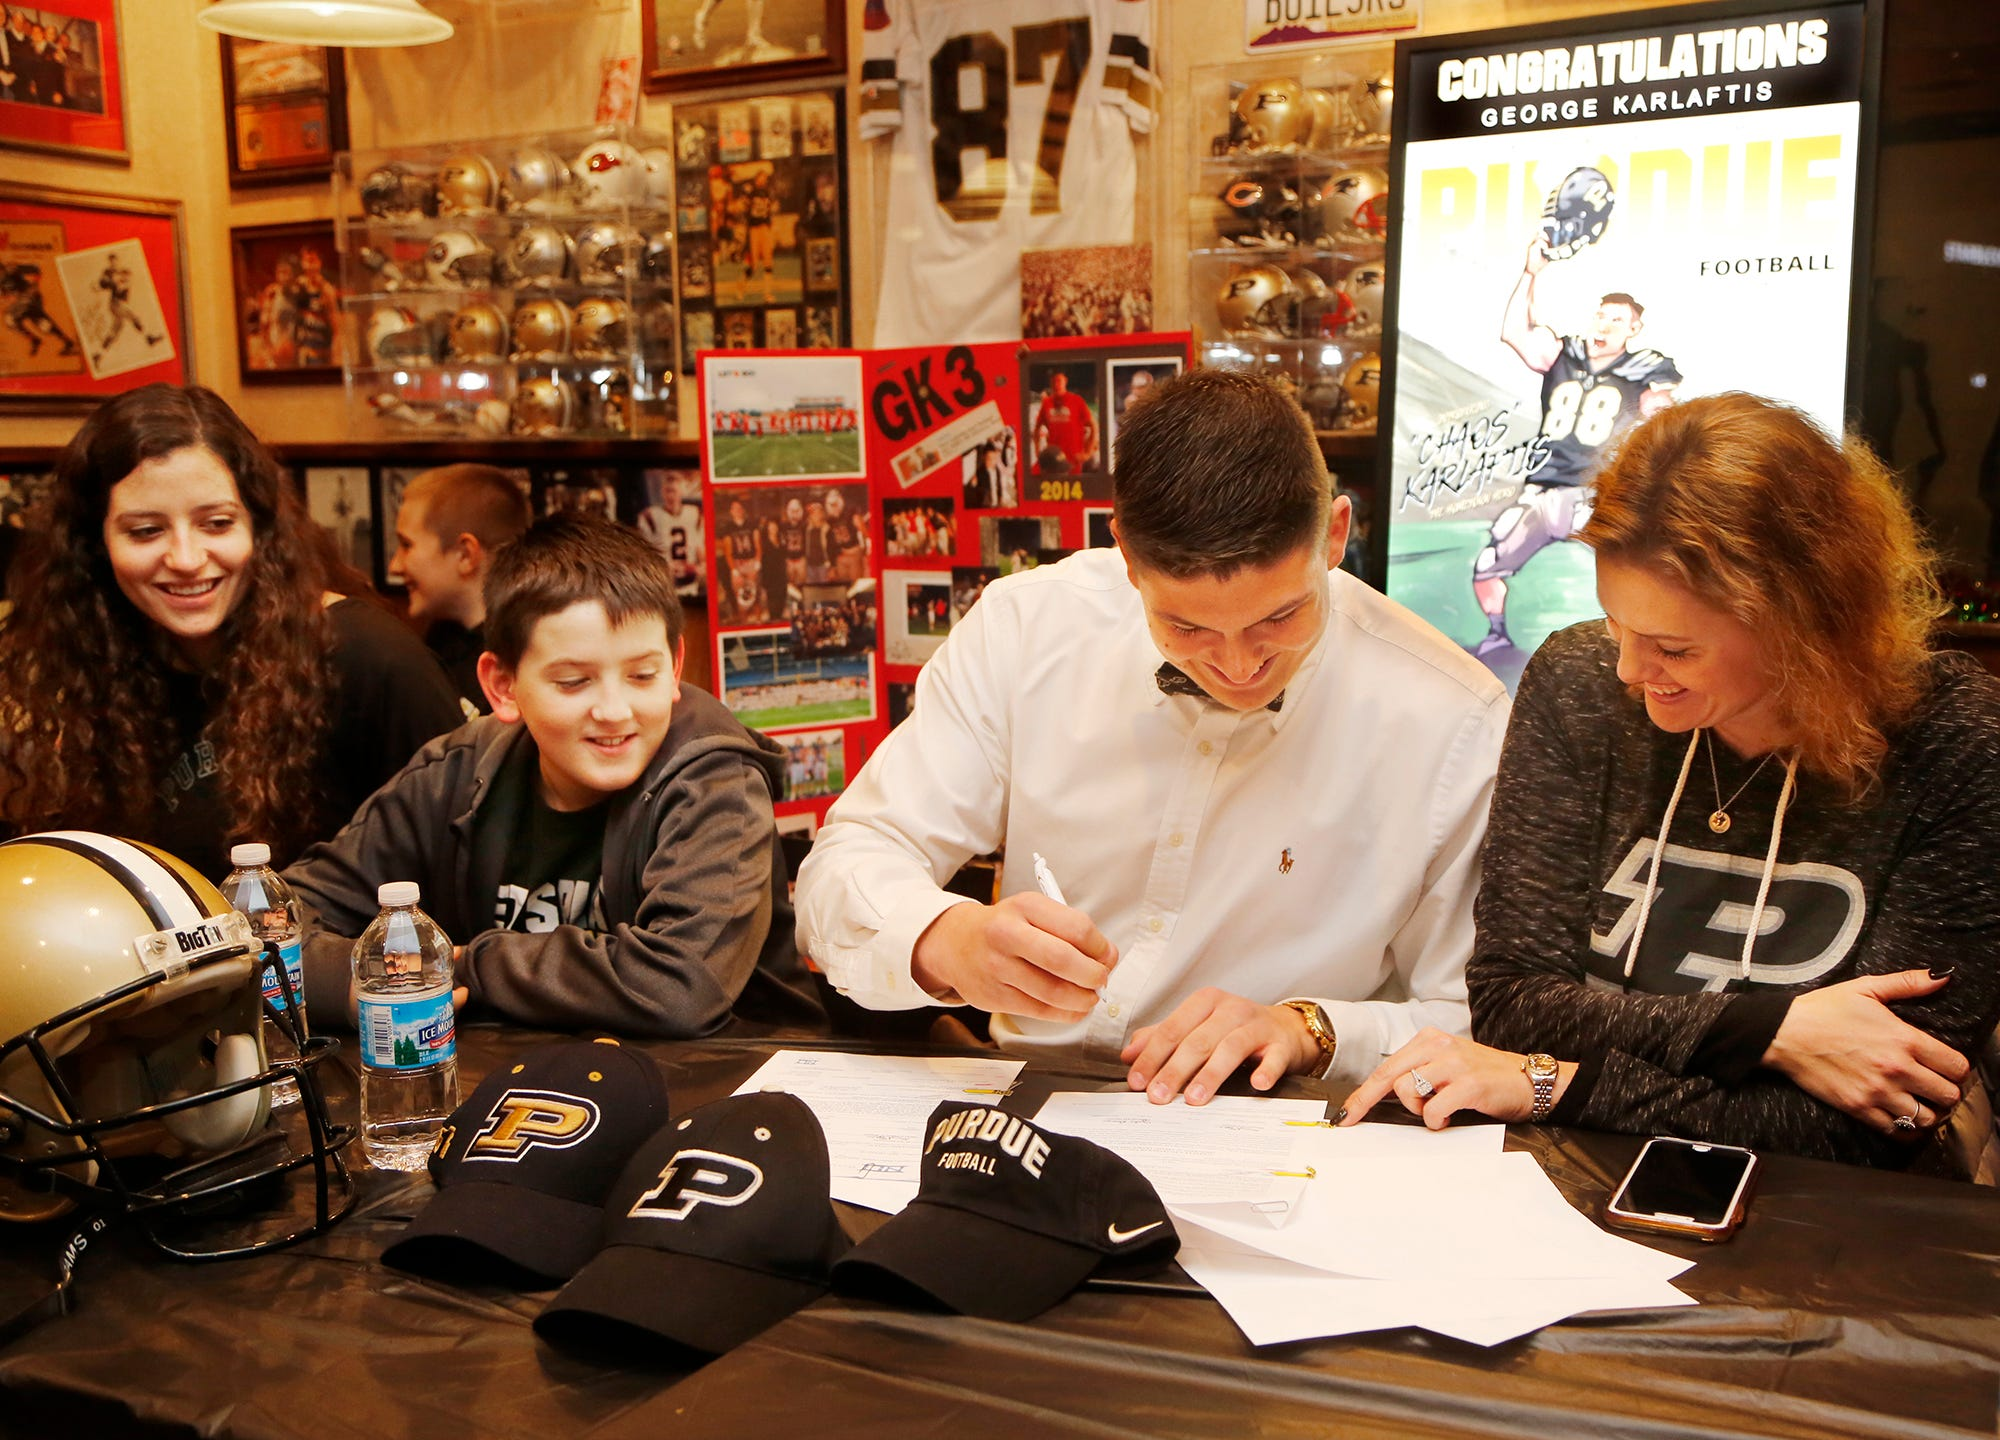 George Karlaftis of West Lafayette High School dons a Purdue cap after signing a personal copy of his national letter of intent to play football for the Boilermakers Wednesday, December 19, 2018, at Bruno's in West Lafayette. Karlaftis was joined by sister Annie, brothers Niko and Yanni and his mother Amy and numerous other friends and relatives for the event.